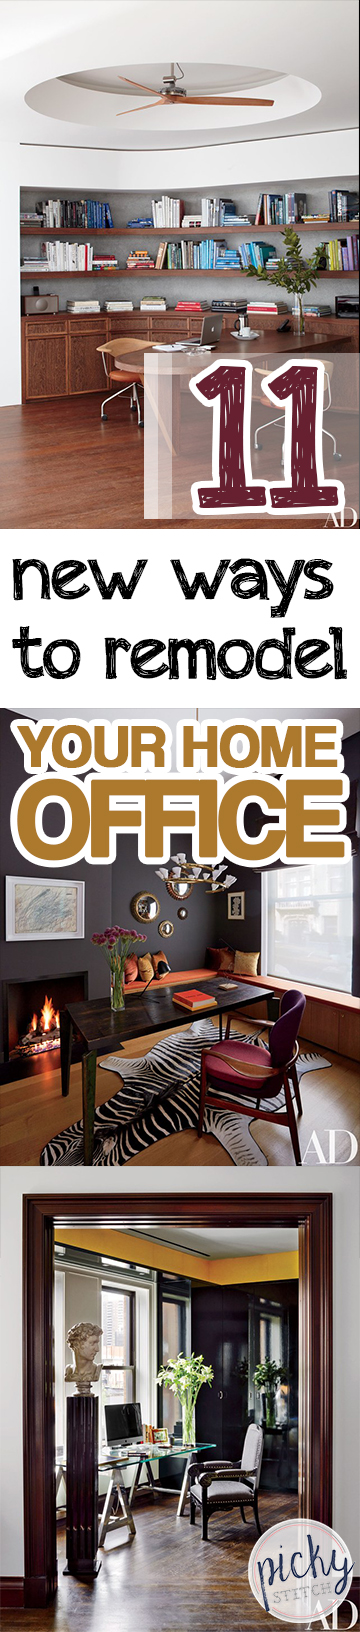 How to Remodel Your Office, Home Office Remodeling, Home Office Inspirations, Home Office Organization, Office Organization, Office Organization Hacks, Home Organization, Home Remodel, Easy Office Remodel, DIY Office Organization, DIY Office Remodel, Popular